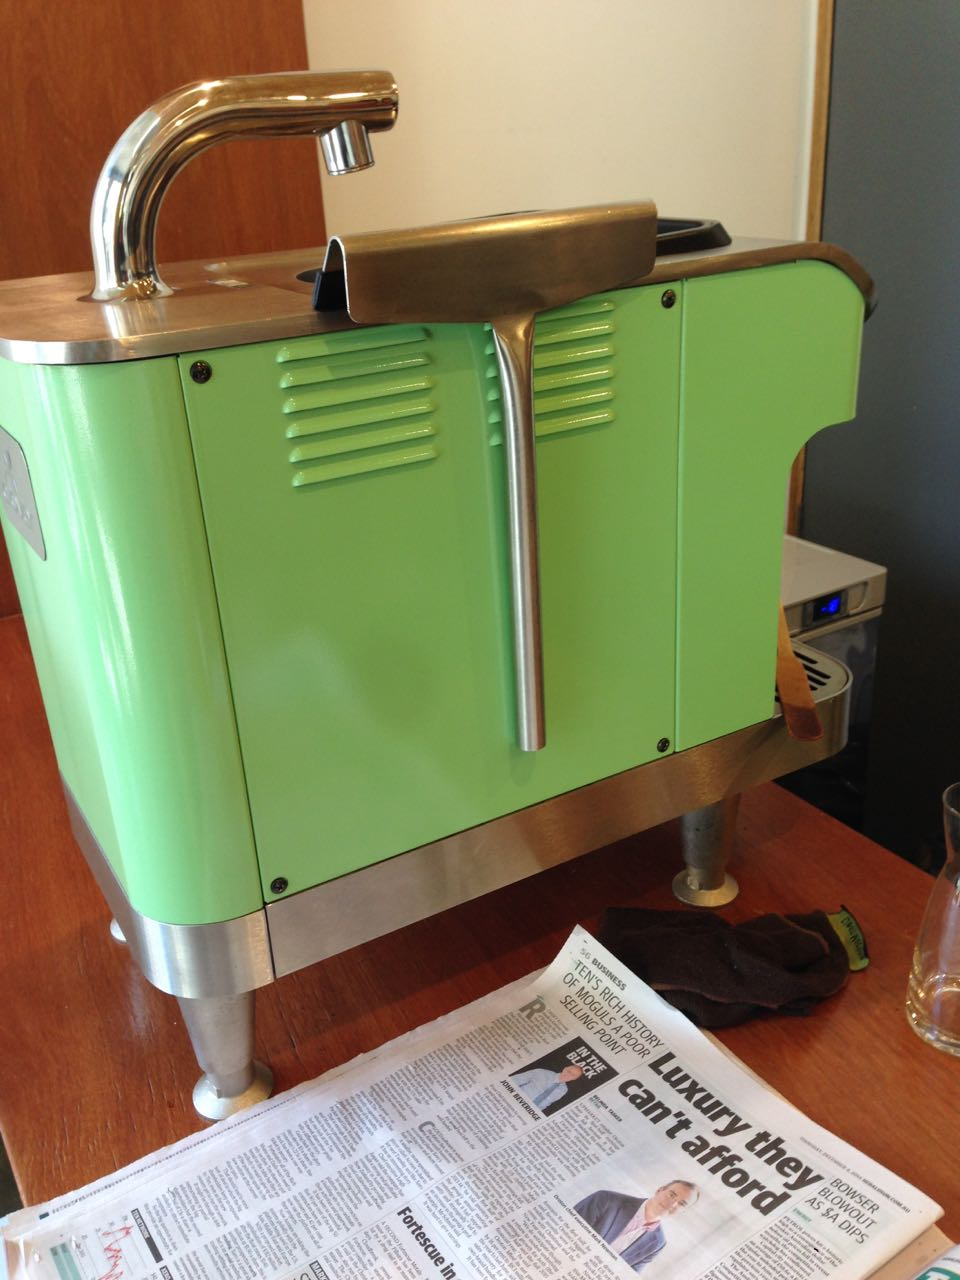 Clover at Padre. Same colour as the rest of the equipment. The article in the newspaper was probably about people like us wanting a clover.